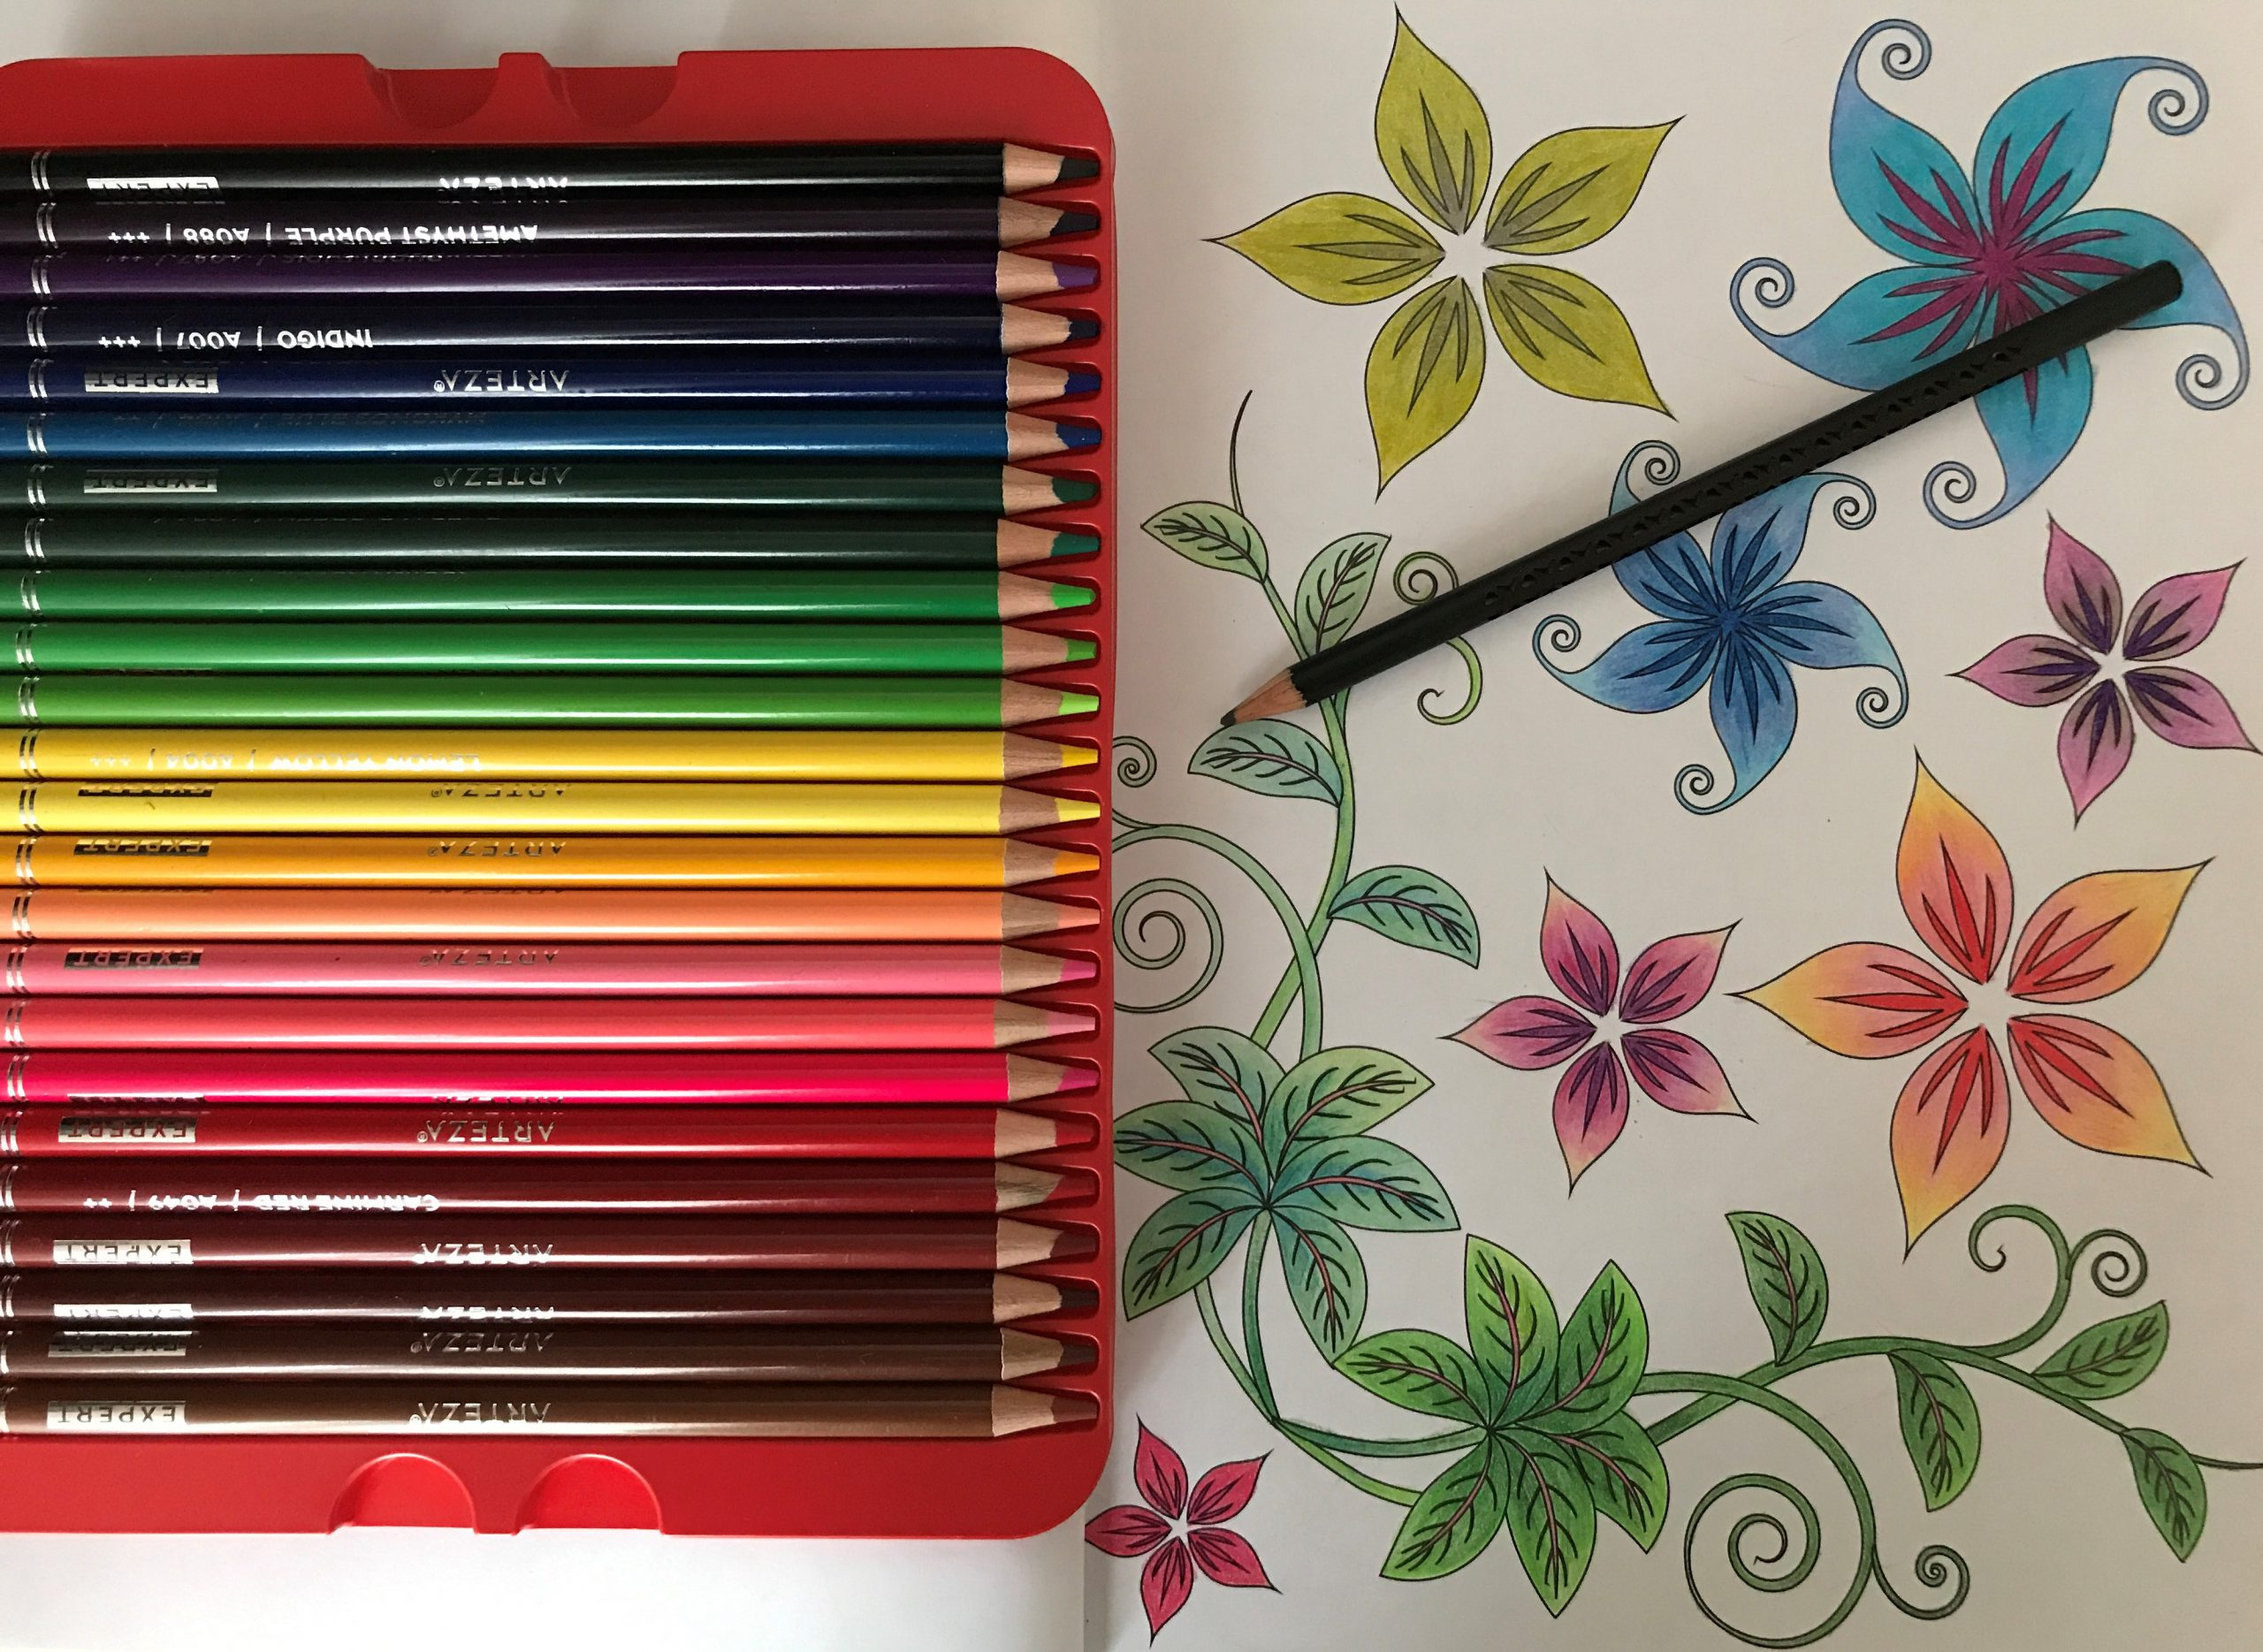 coloring book as a creative way to find joy and peace during the coronavirus quarantine